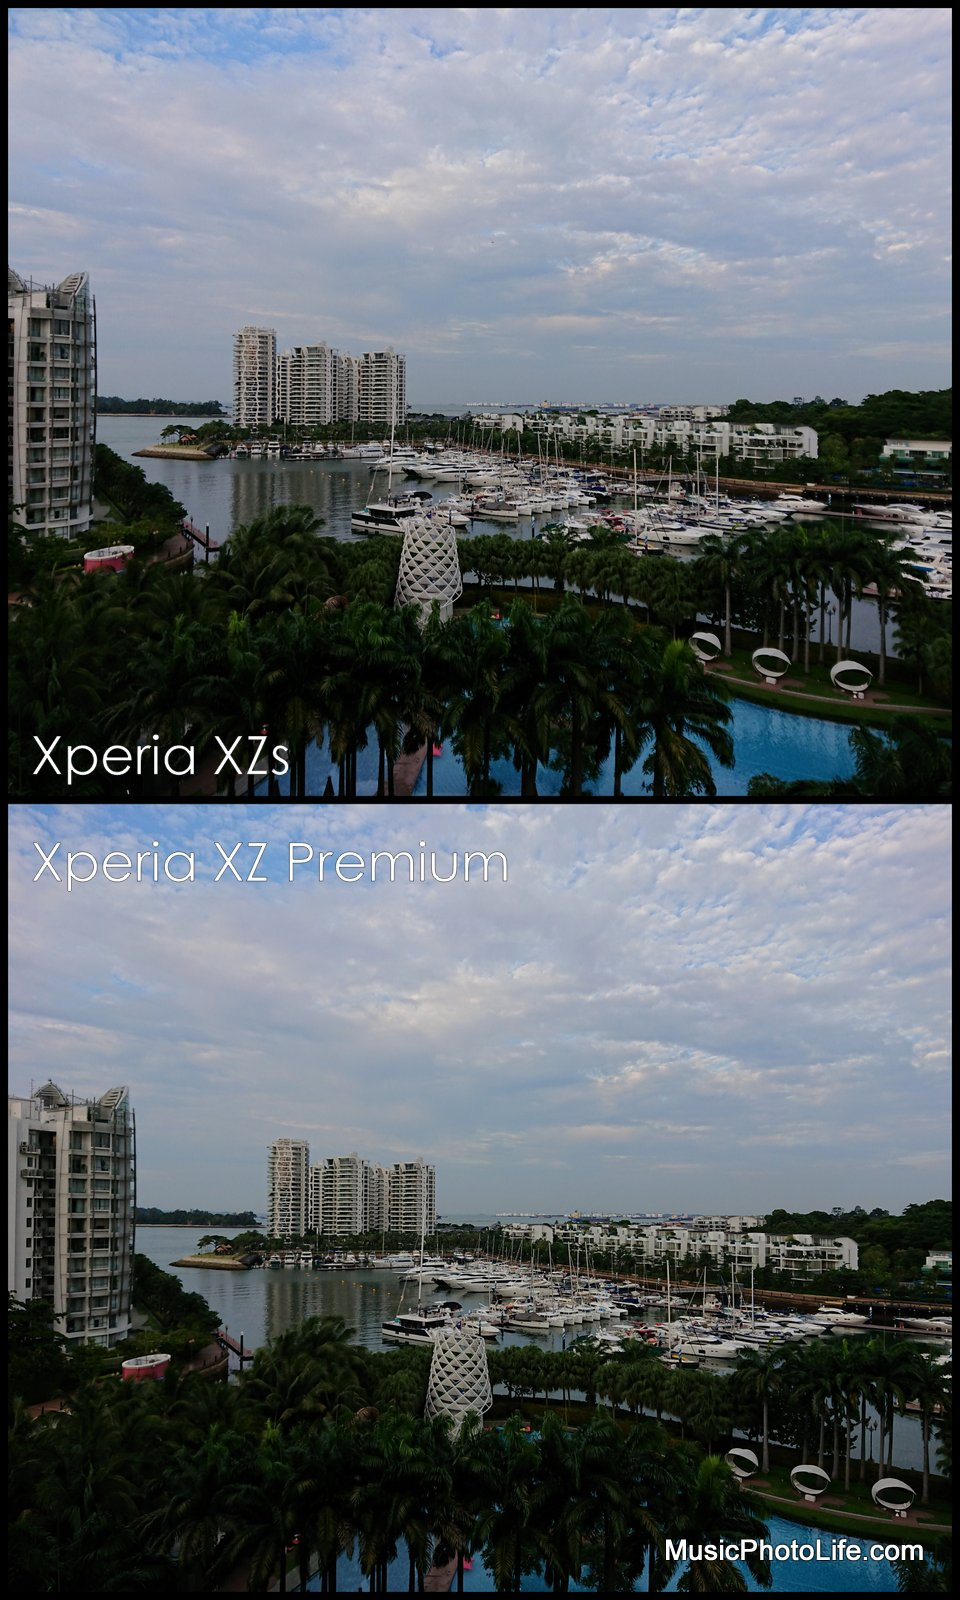 Sony Xperia XZs and Xperia XZ Premium sample images review by musicphotolife.com